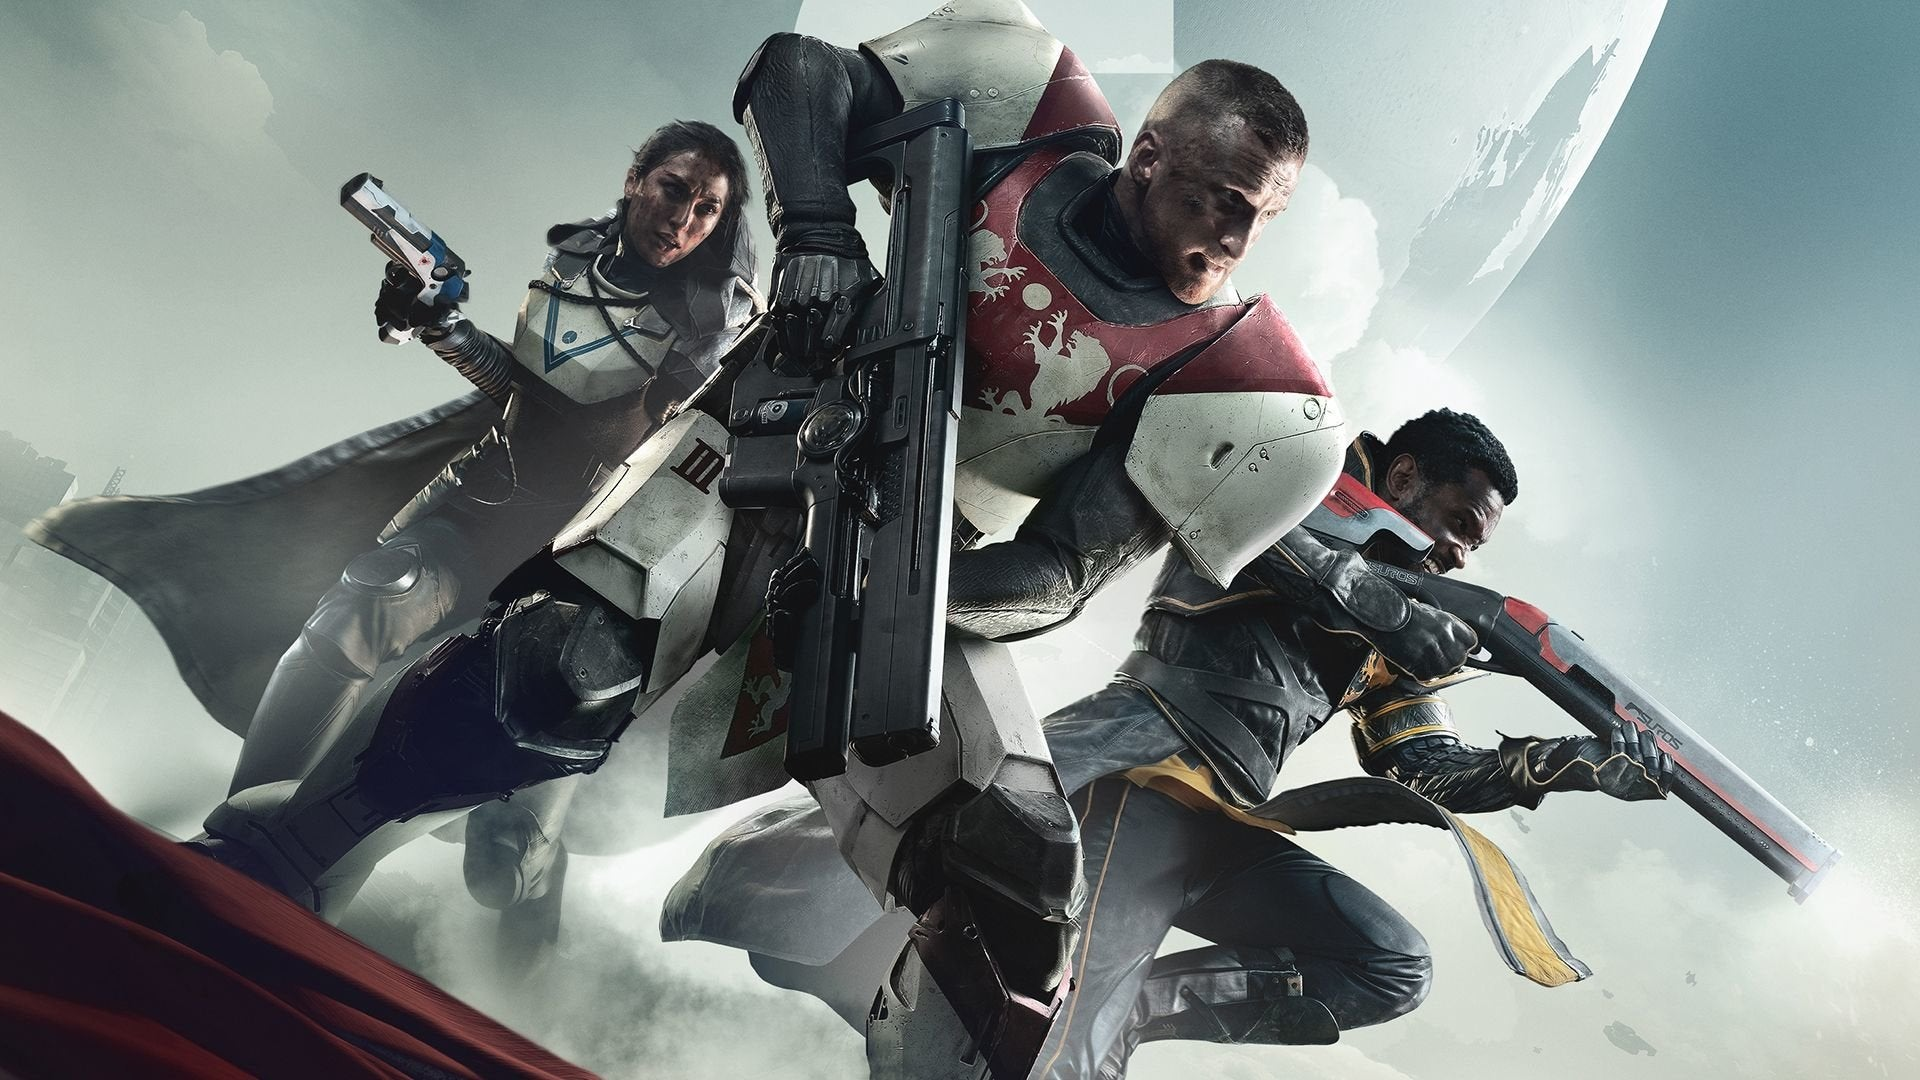 Here's how to download Destiny 2 for free on PC right now   Trusted Reviews